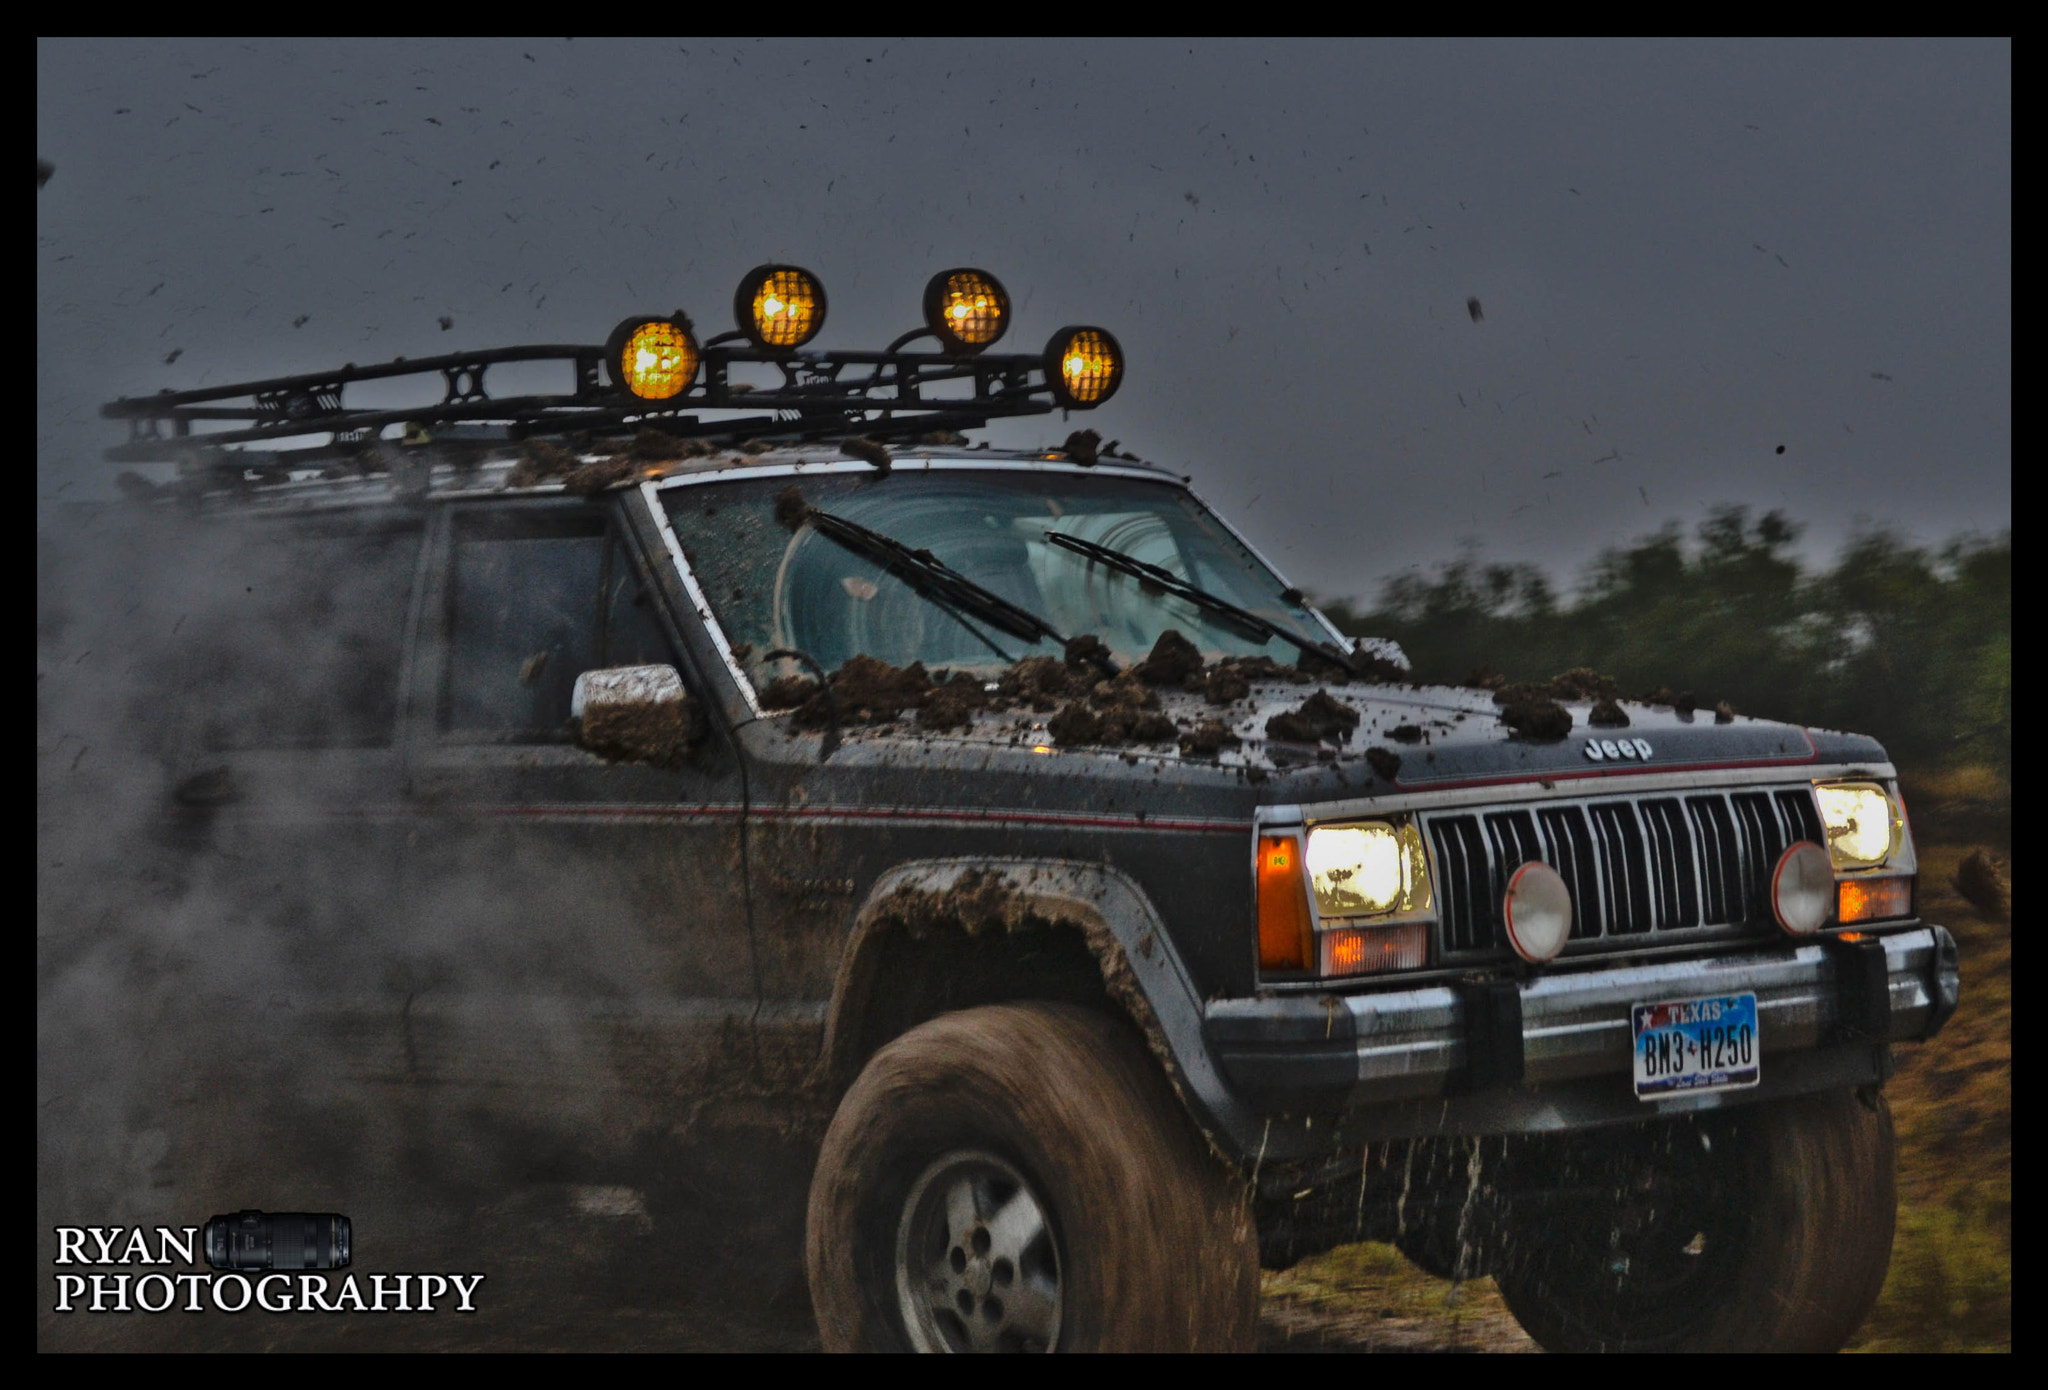 Photograph True Jeep by Ryan Garza on 500px